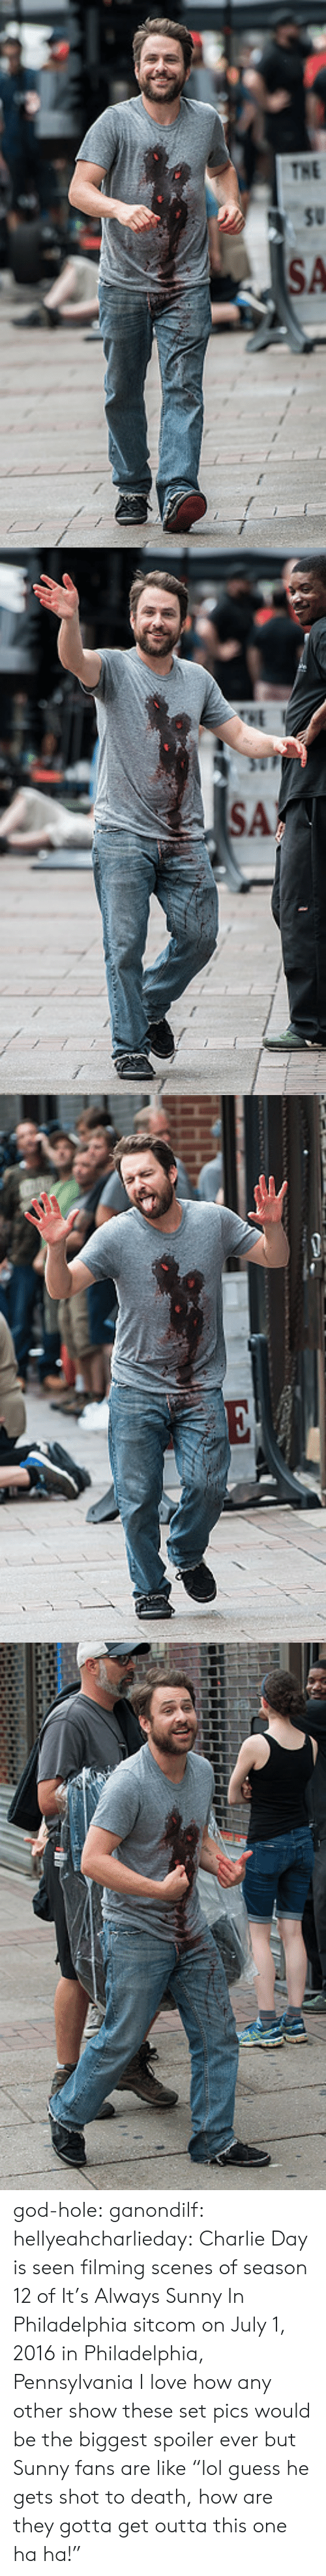 "Always Sunny: god-hole: ganondilf:  hellyeahcharlieday:  Charlie Day is seen filming scenes of season 12 of It's Always Sunny In Philadelphia sitcom on July 1, 2016 in Philadelphia, Pennsylvania  I love how any other show these set pics would be the biggest spoiler ever but Sunny fans are like ""lol guess he gets shot to death, how are they gotta get outta this one ha ha!"""